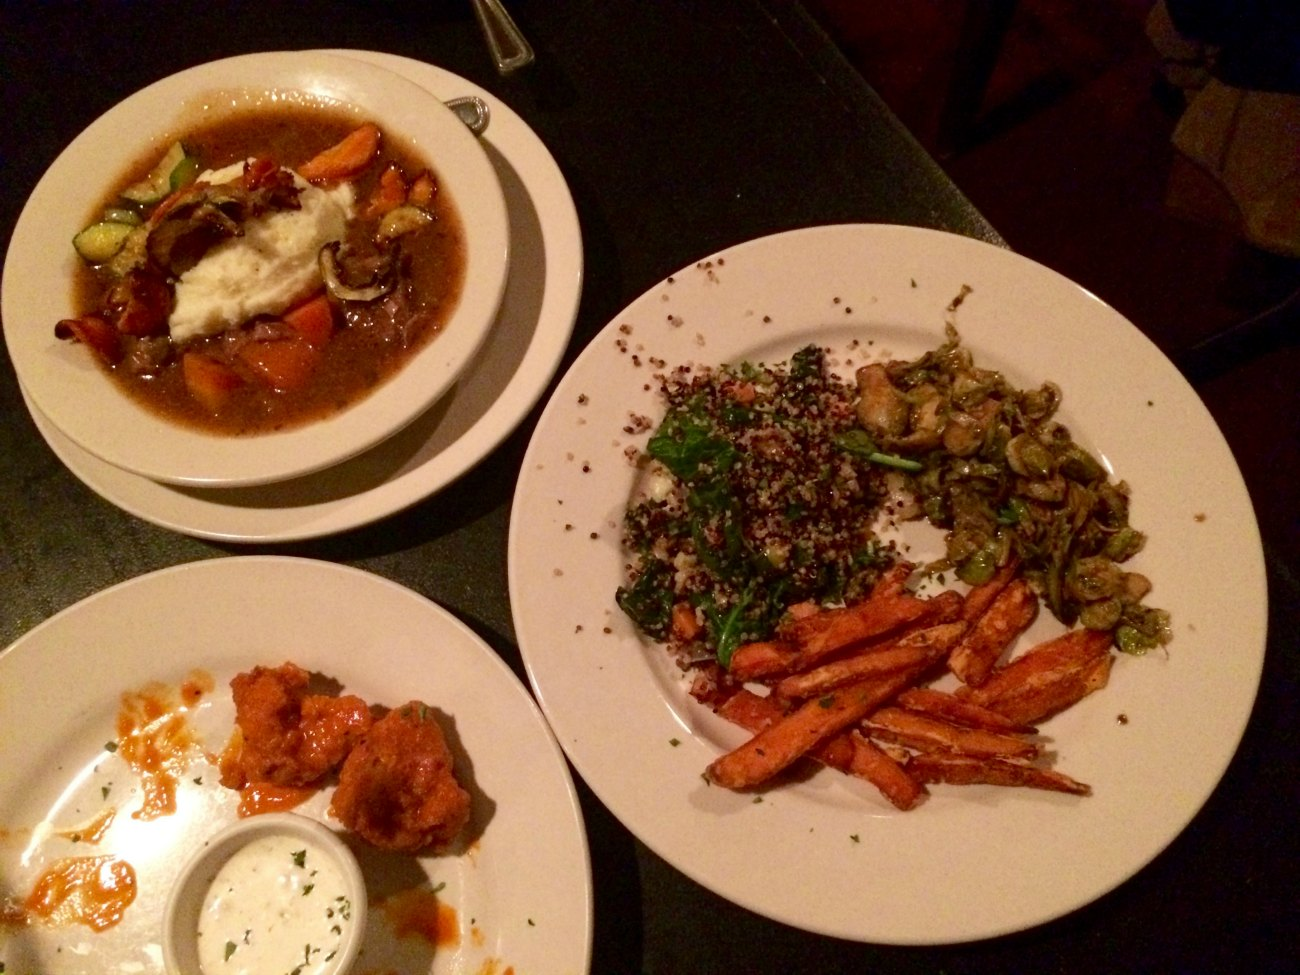 The award for best British/Irish pub with extensive vegan menu options and an unexpected Taco Tuesday goes to…